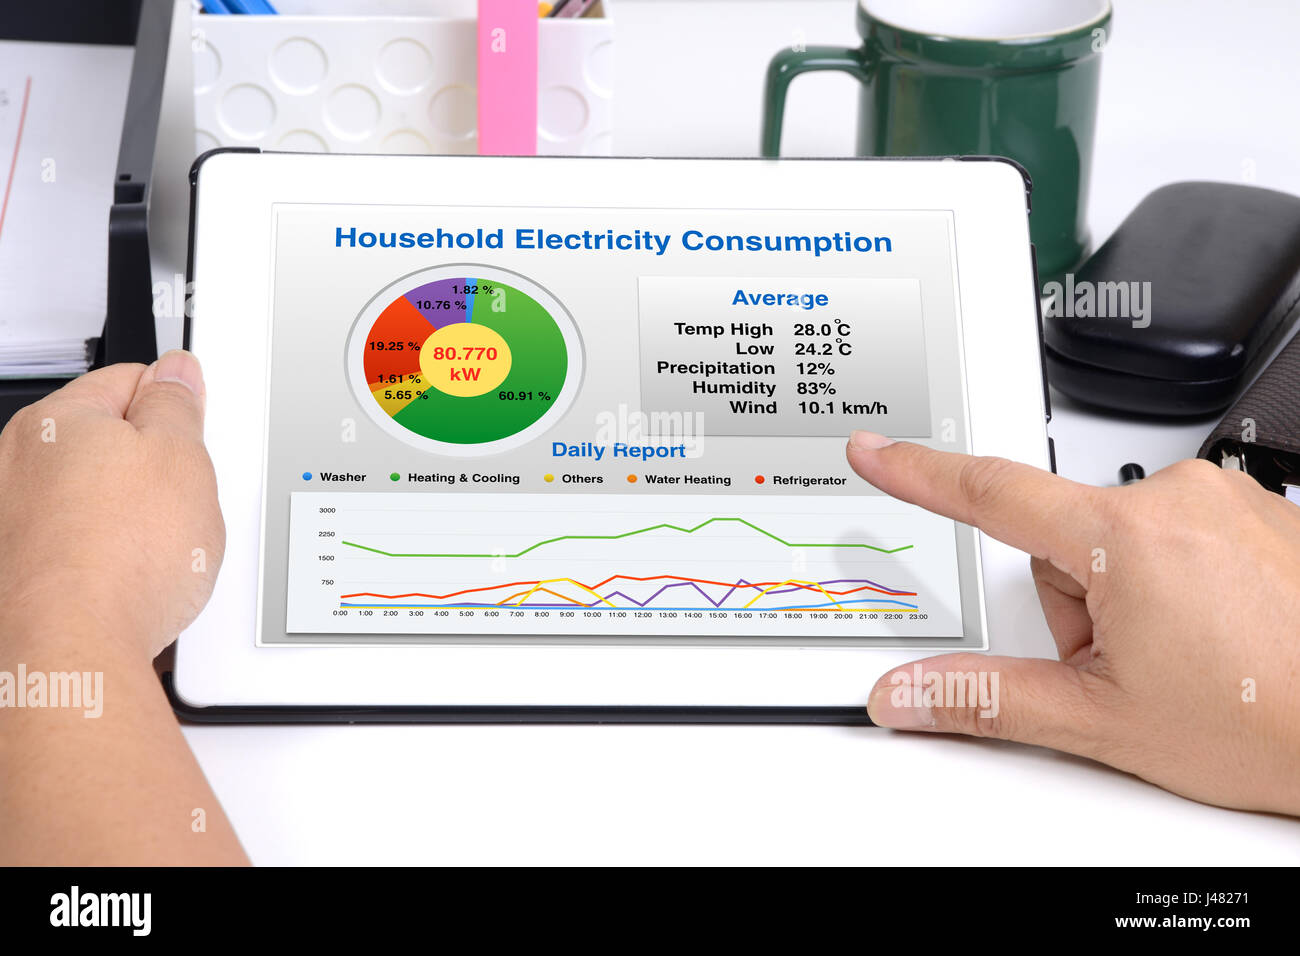 Summary of household electricity usage per day show on tablet computer - Stock Image